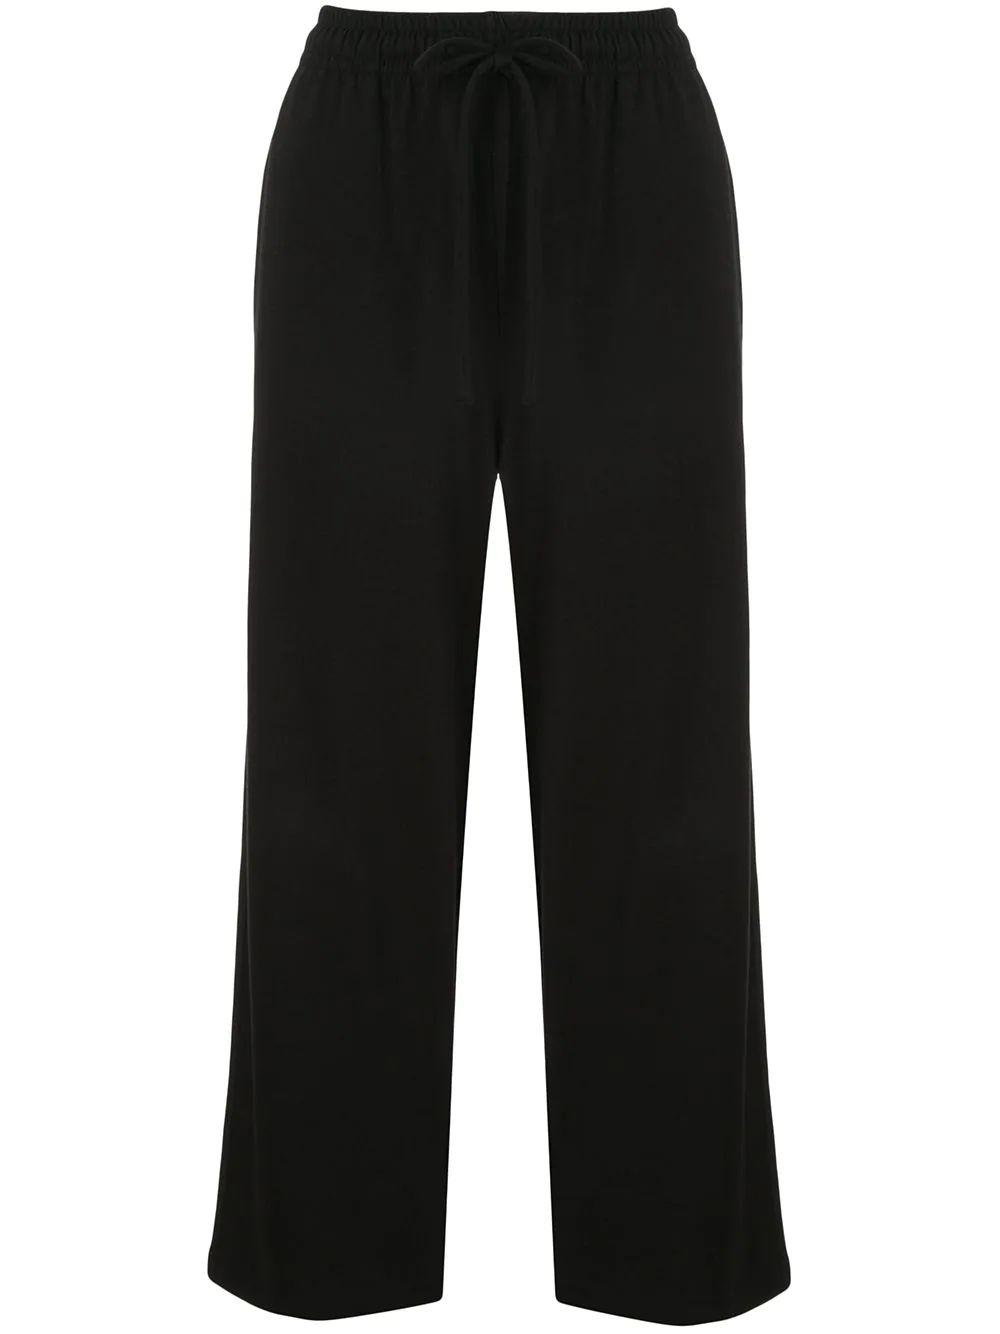 Cropped Wide Leg Pant Item # V647483326